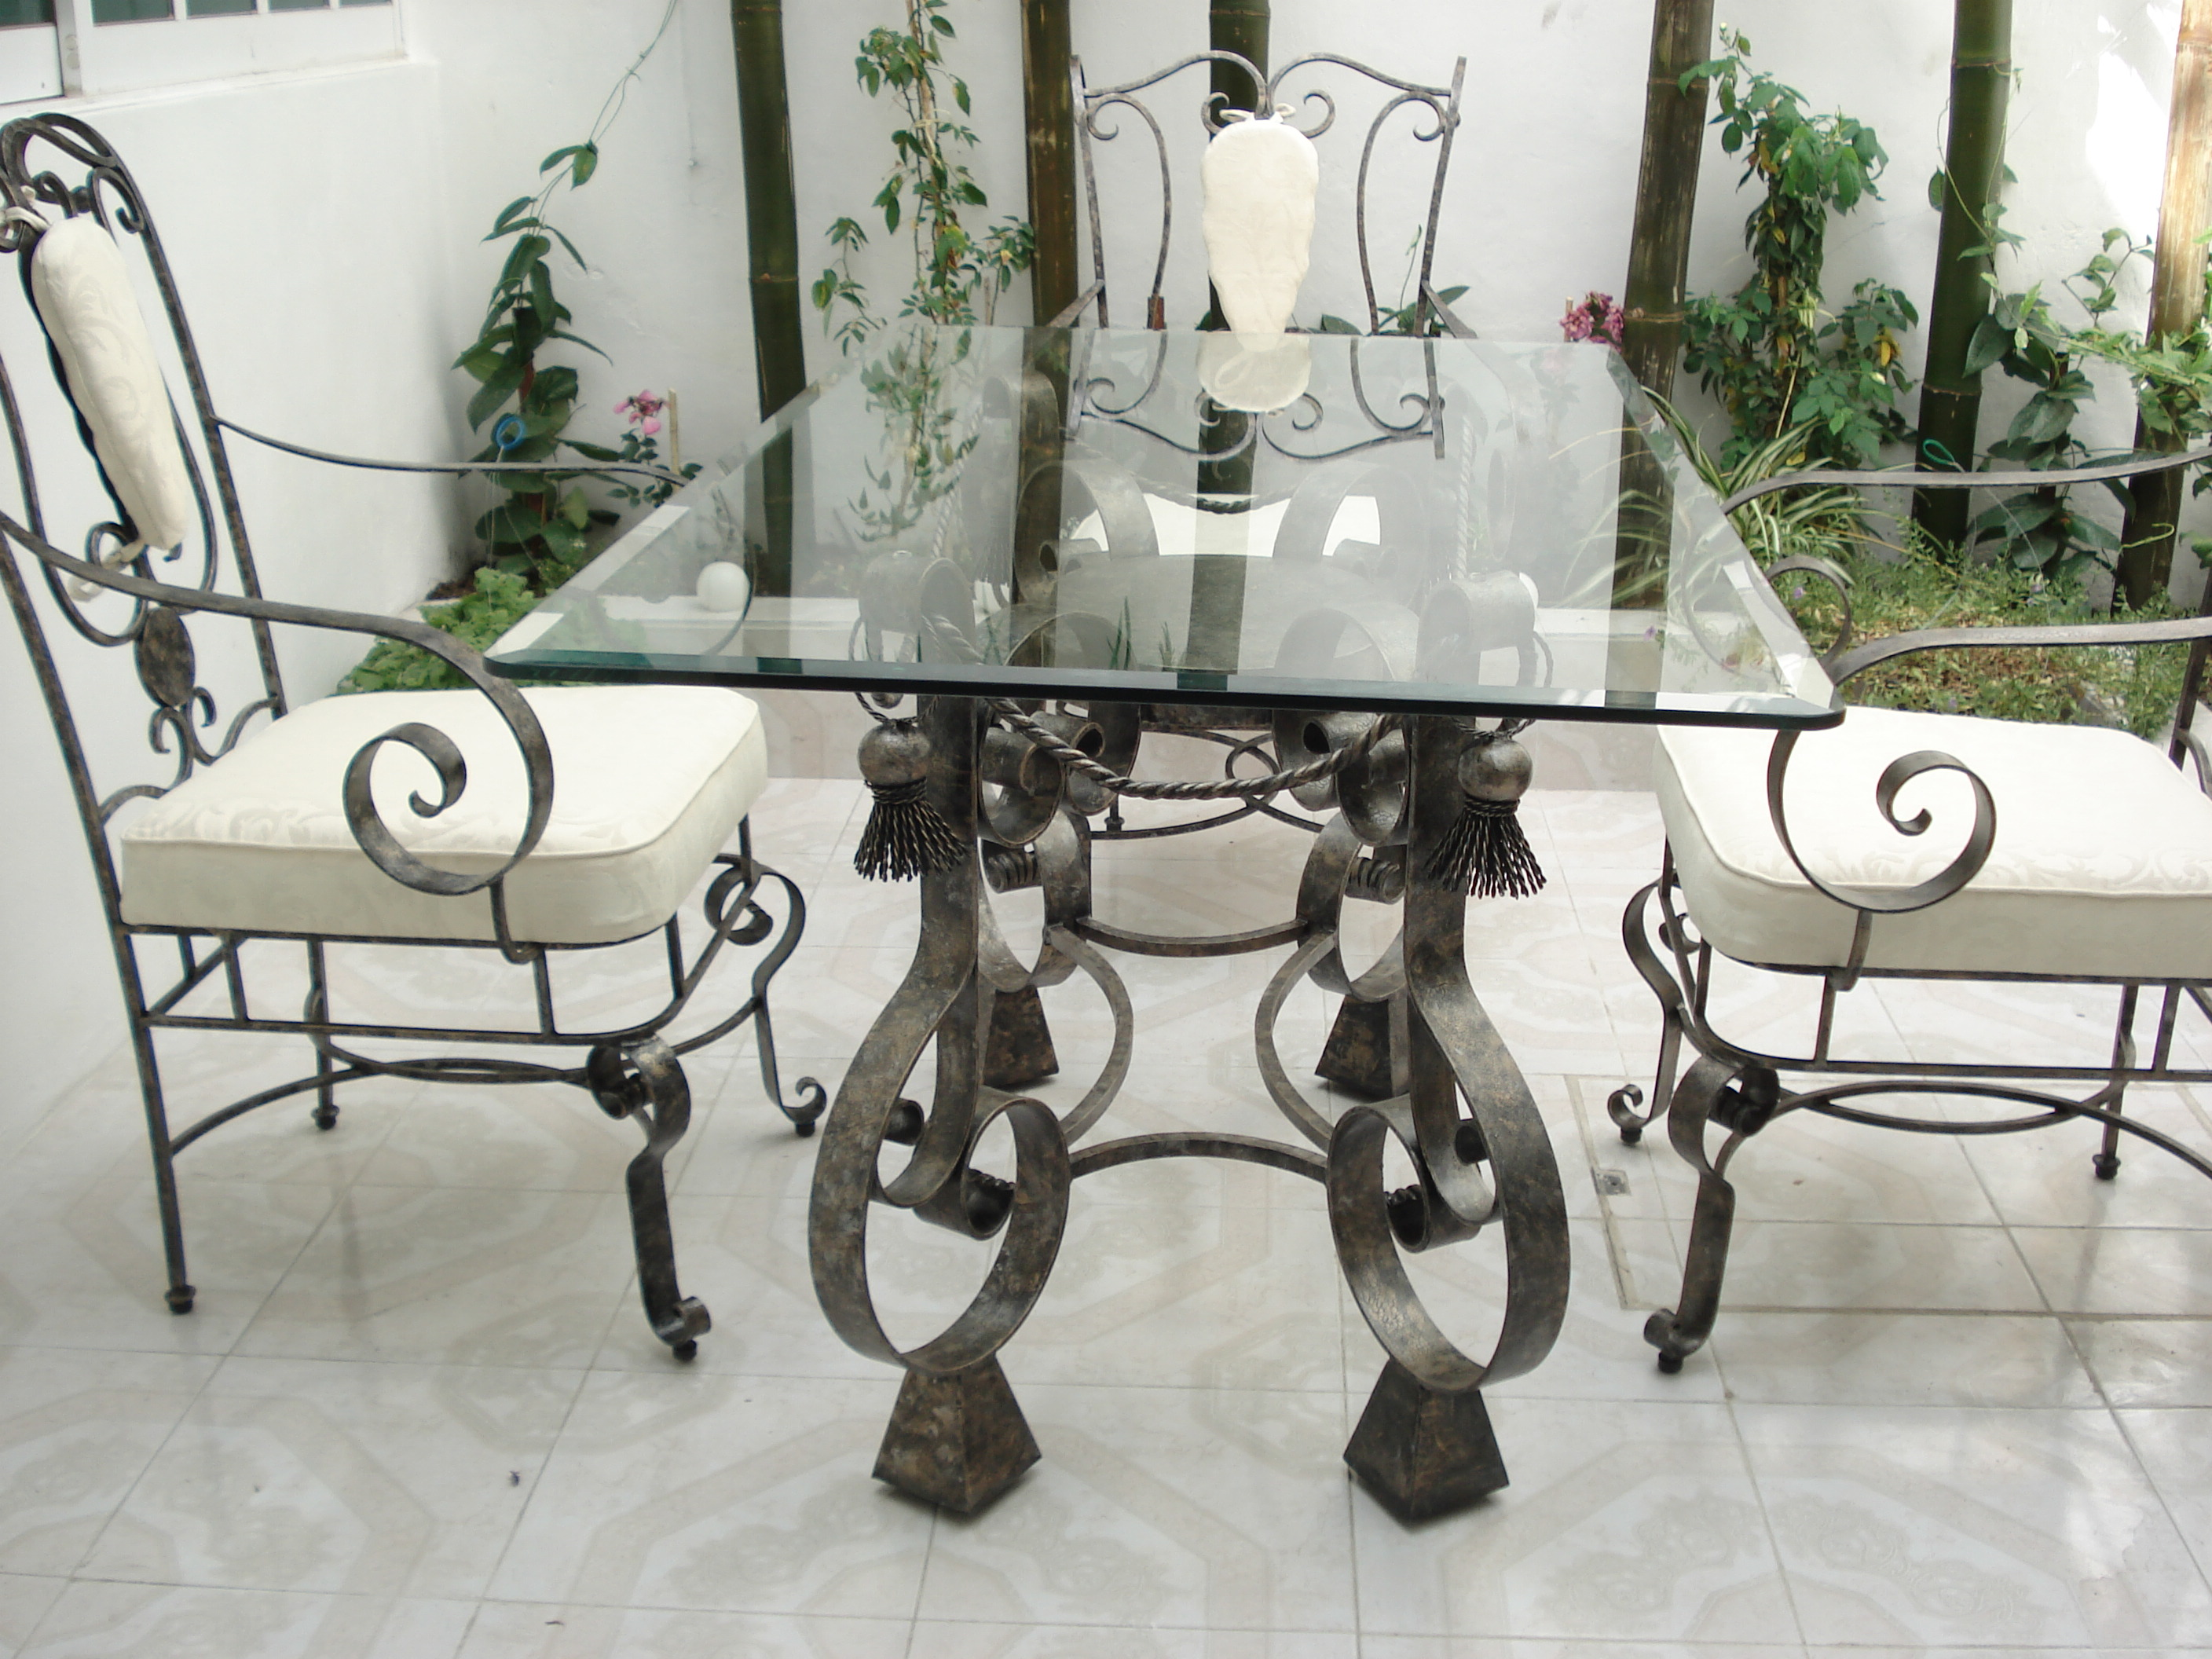 Delightful Rod Iron Table And Chairs Part - 7: Outdoor Wrought Iron Kitchen Table With Rectangular Glass Top And Stylish  Chairs With Wrought Iron And